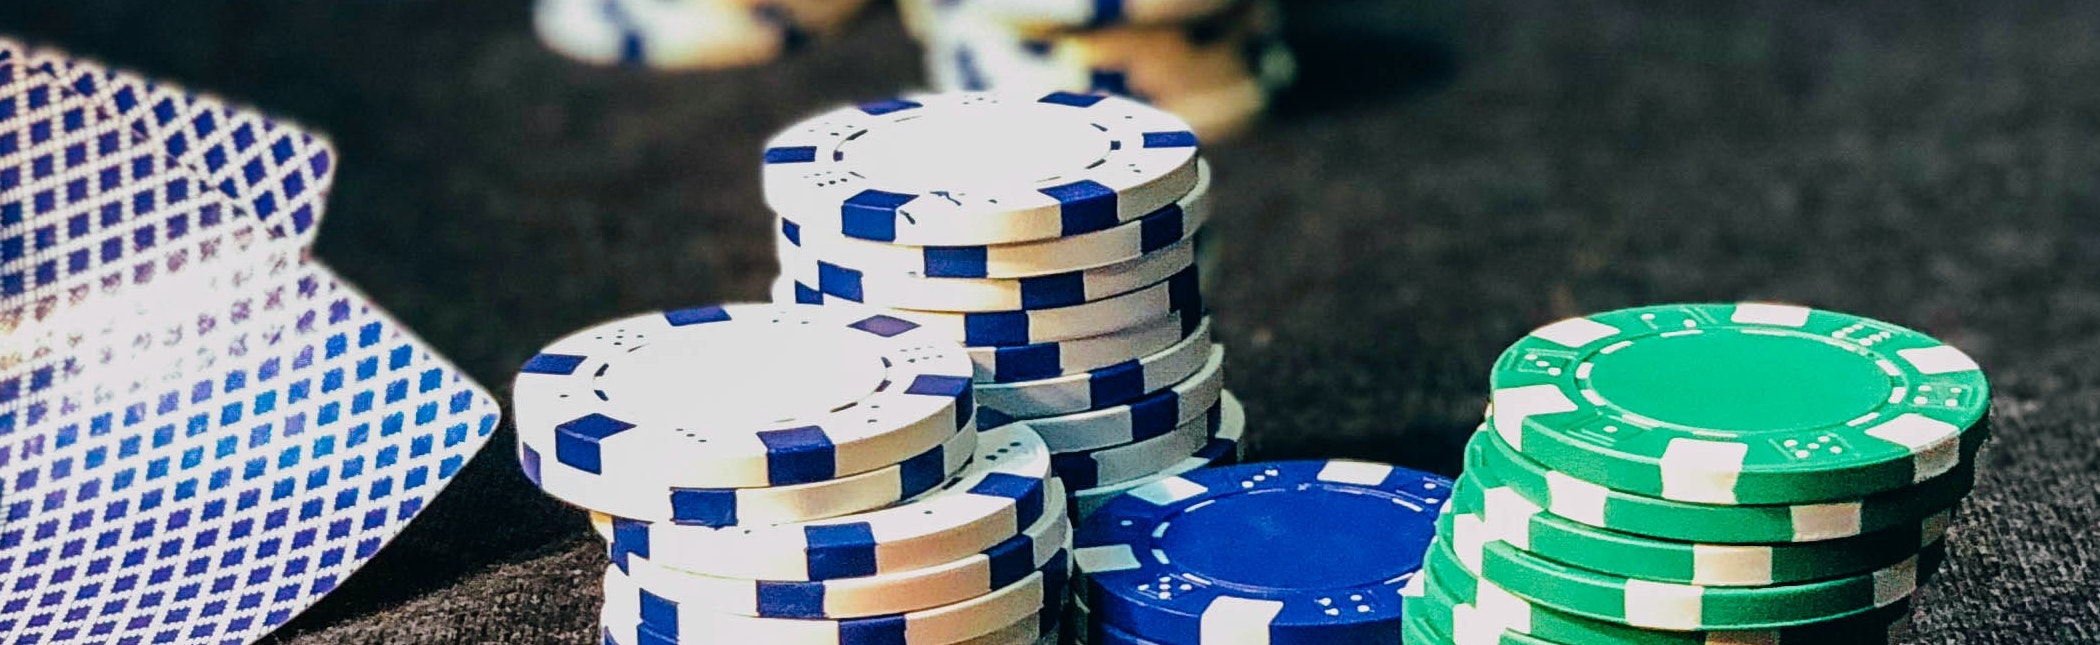 Top 5 fun online casino games you can play at home